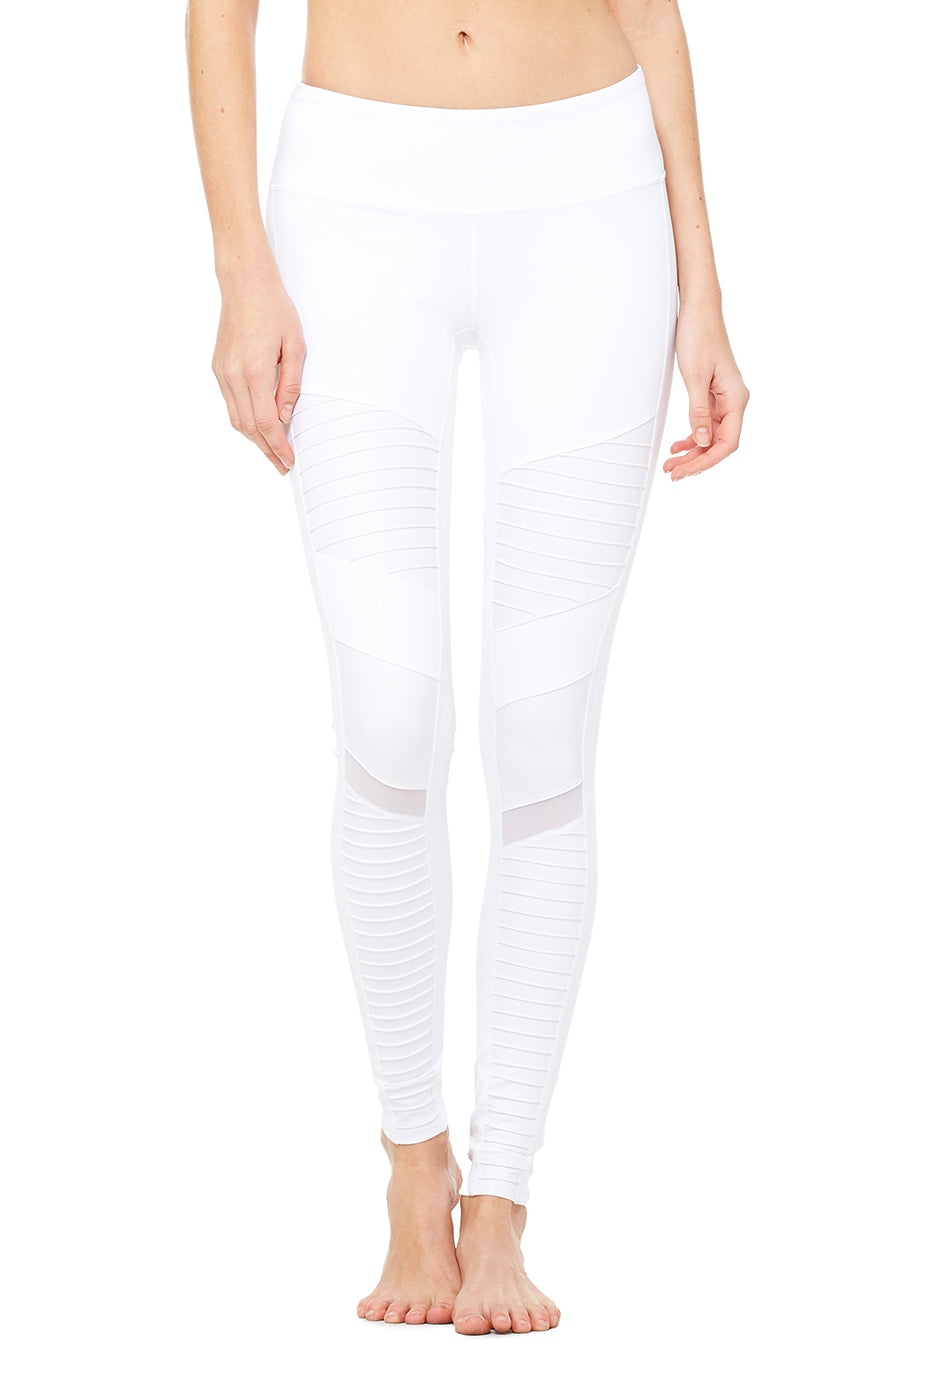 Alo Yoga Moto pant in white